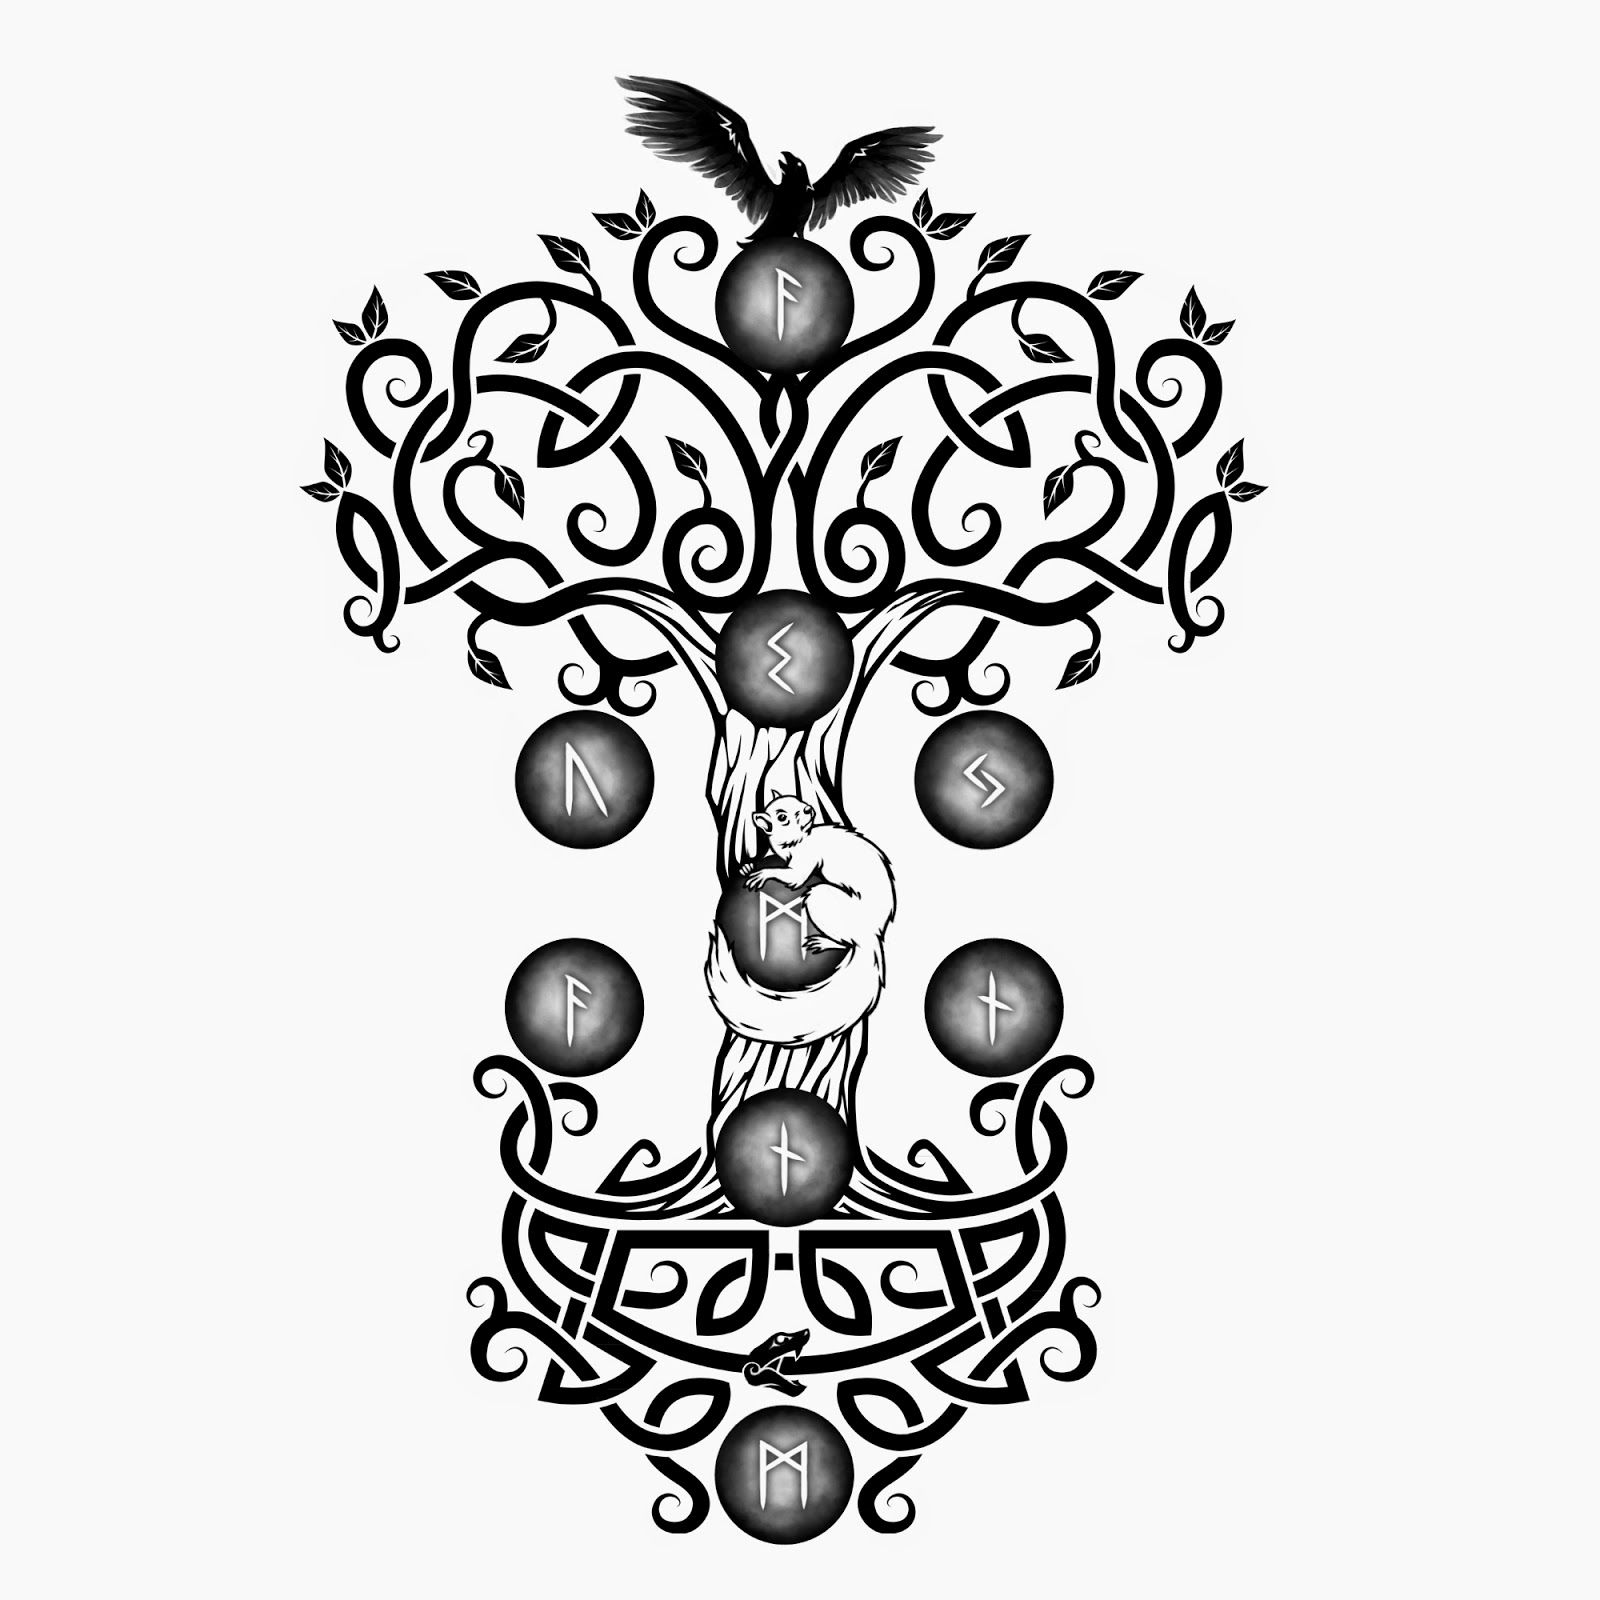 Yggdrasil runes blanches jpg 1600 1600 dragon - Tatouage runes viking signification ...